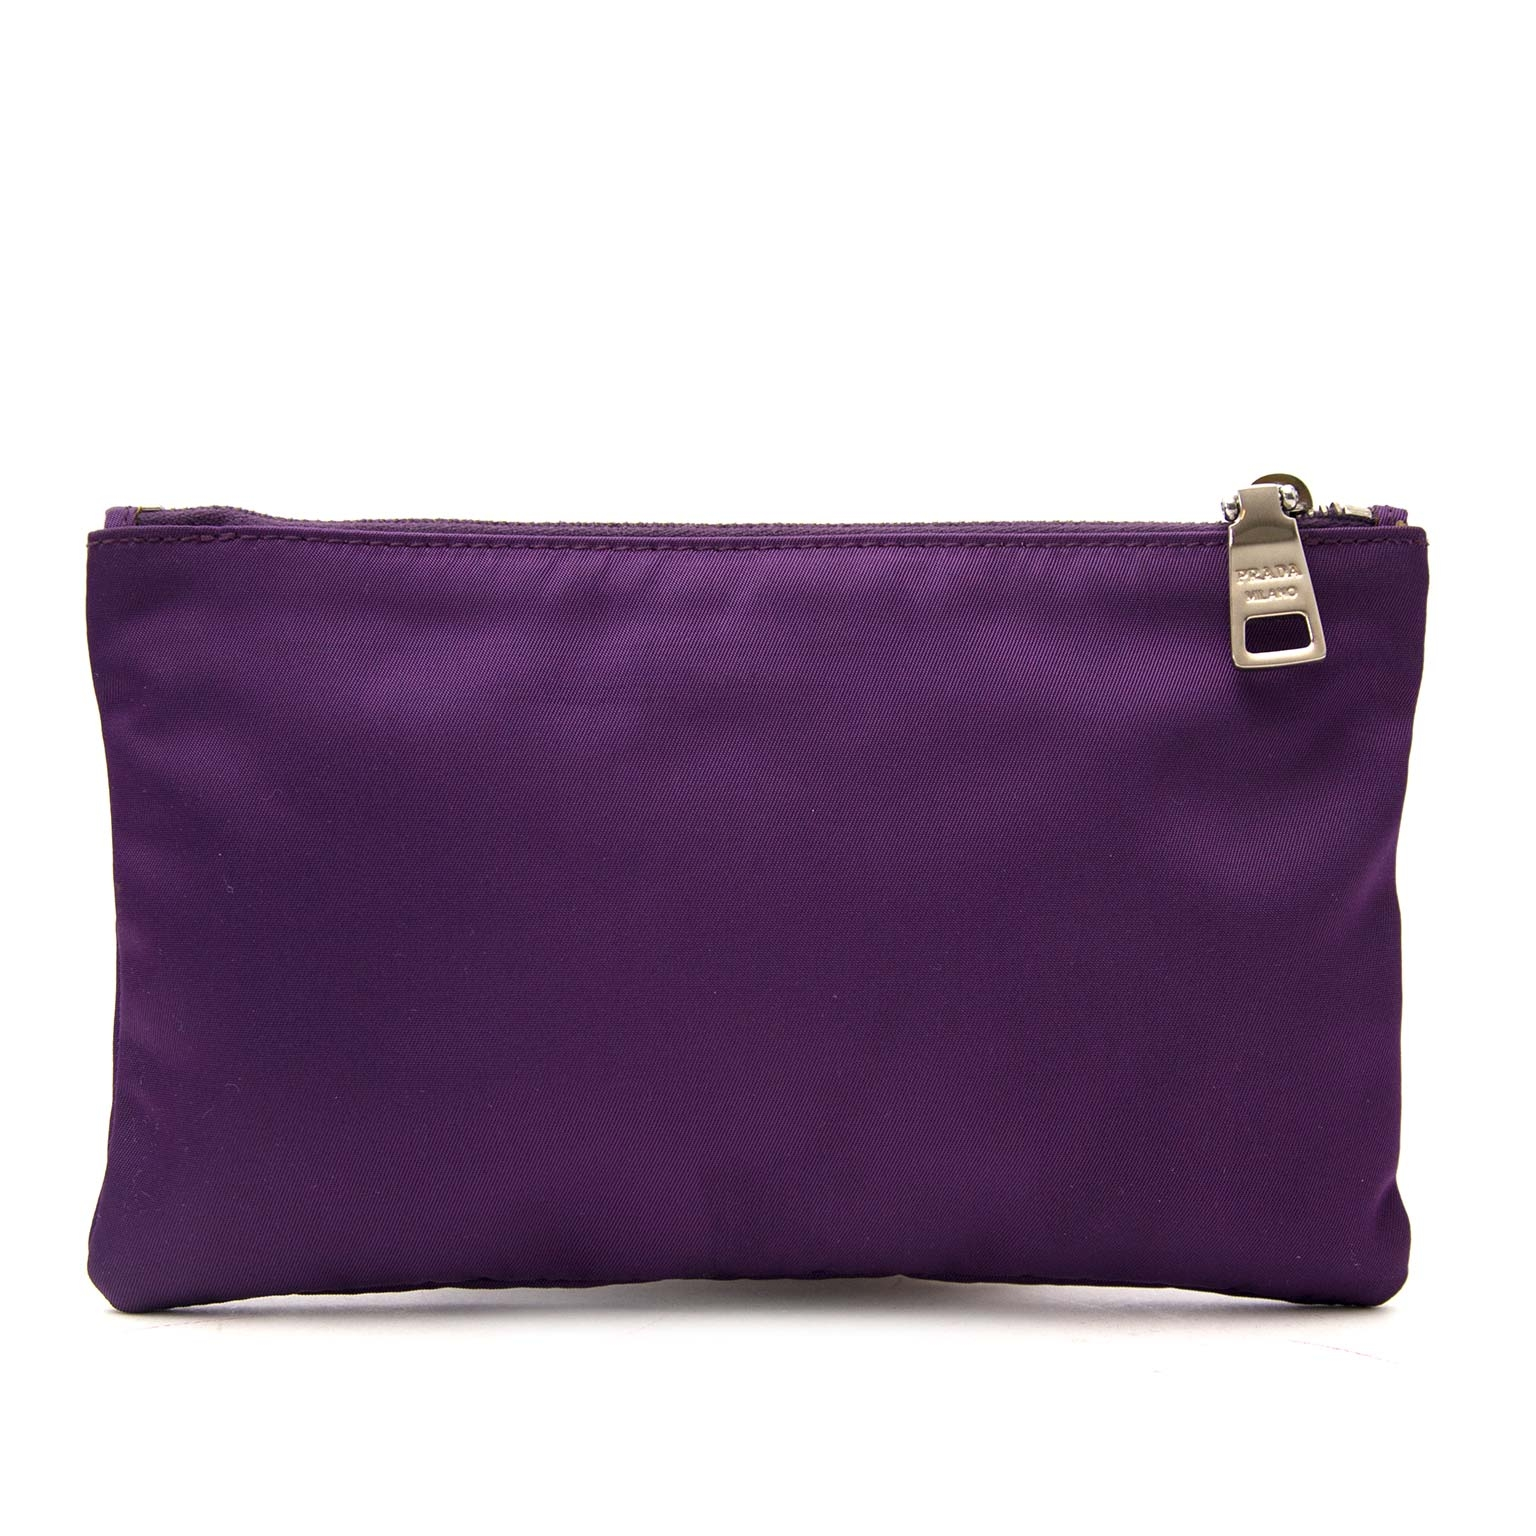 a9adeb4ccc584 ... Prada Purple Pouch With Puppy Detail Buy authentic designer Prada  secondhand bags at Labellov at the